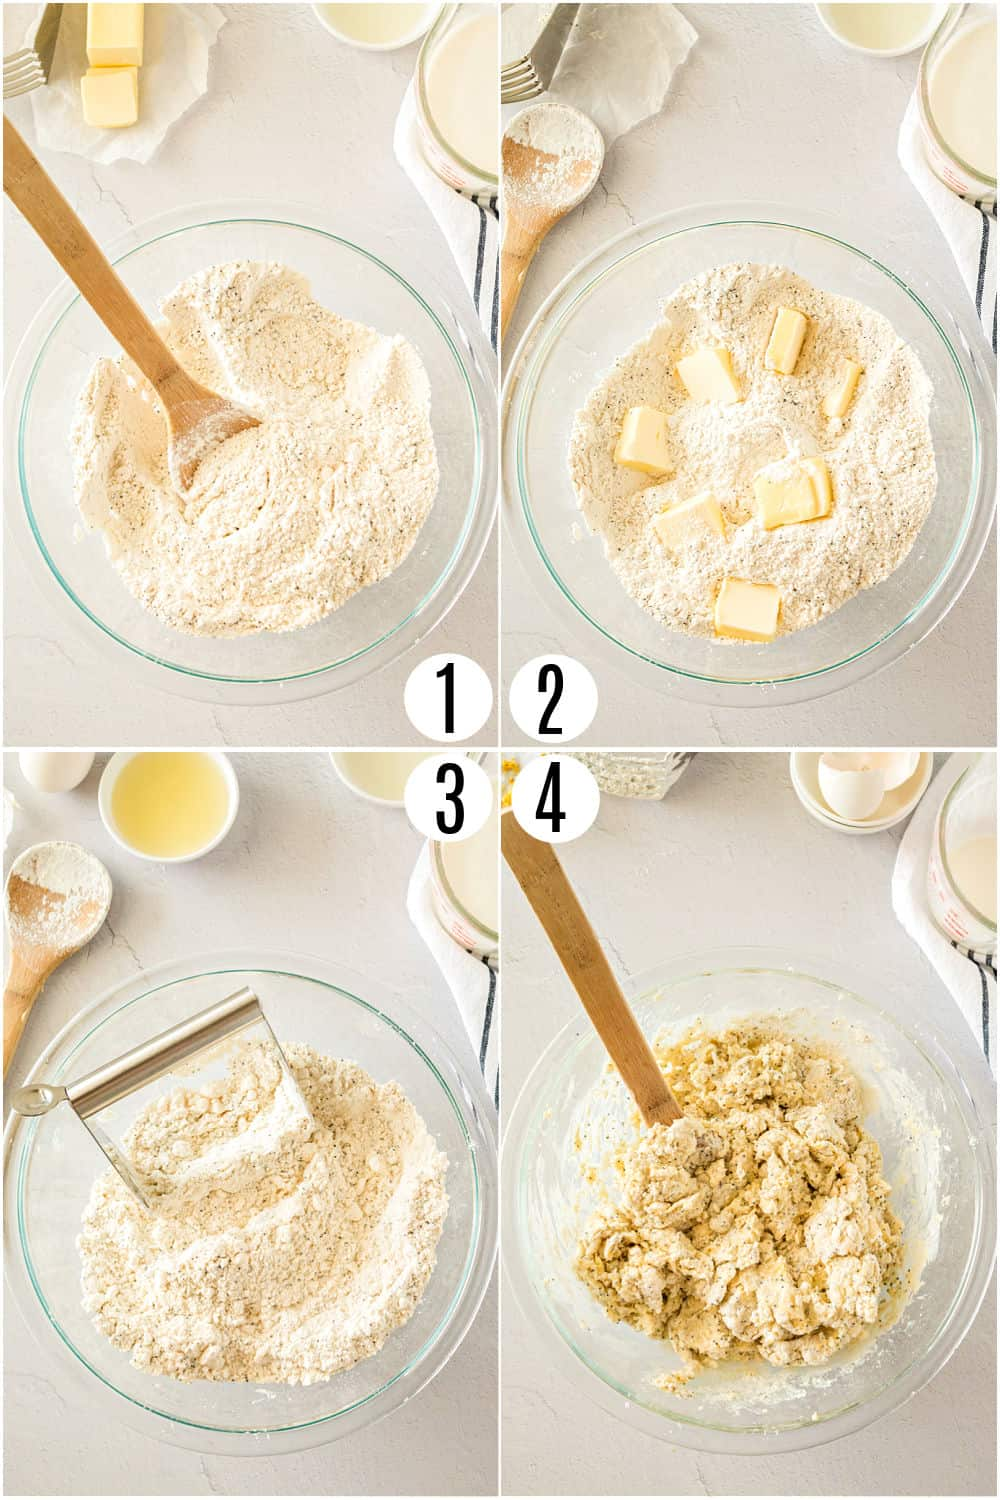 Step by step photos showing how to make lemon scone dough.